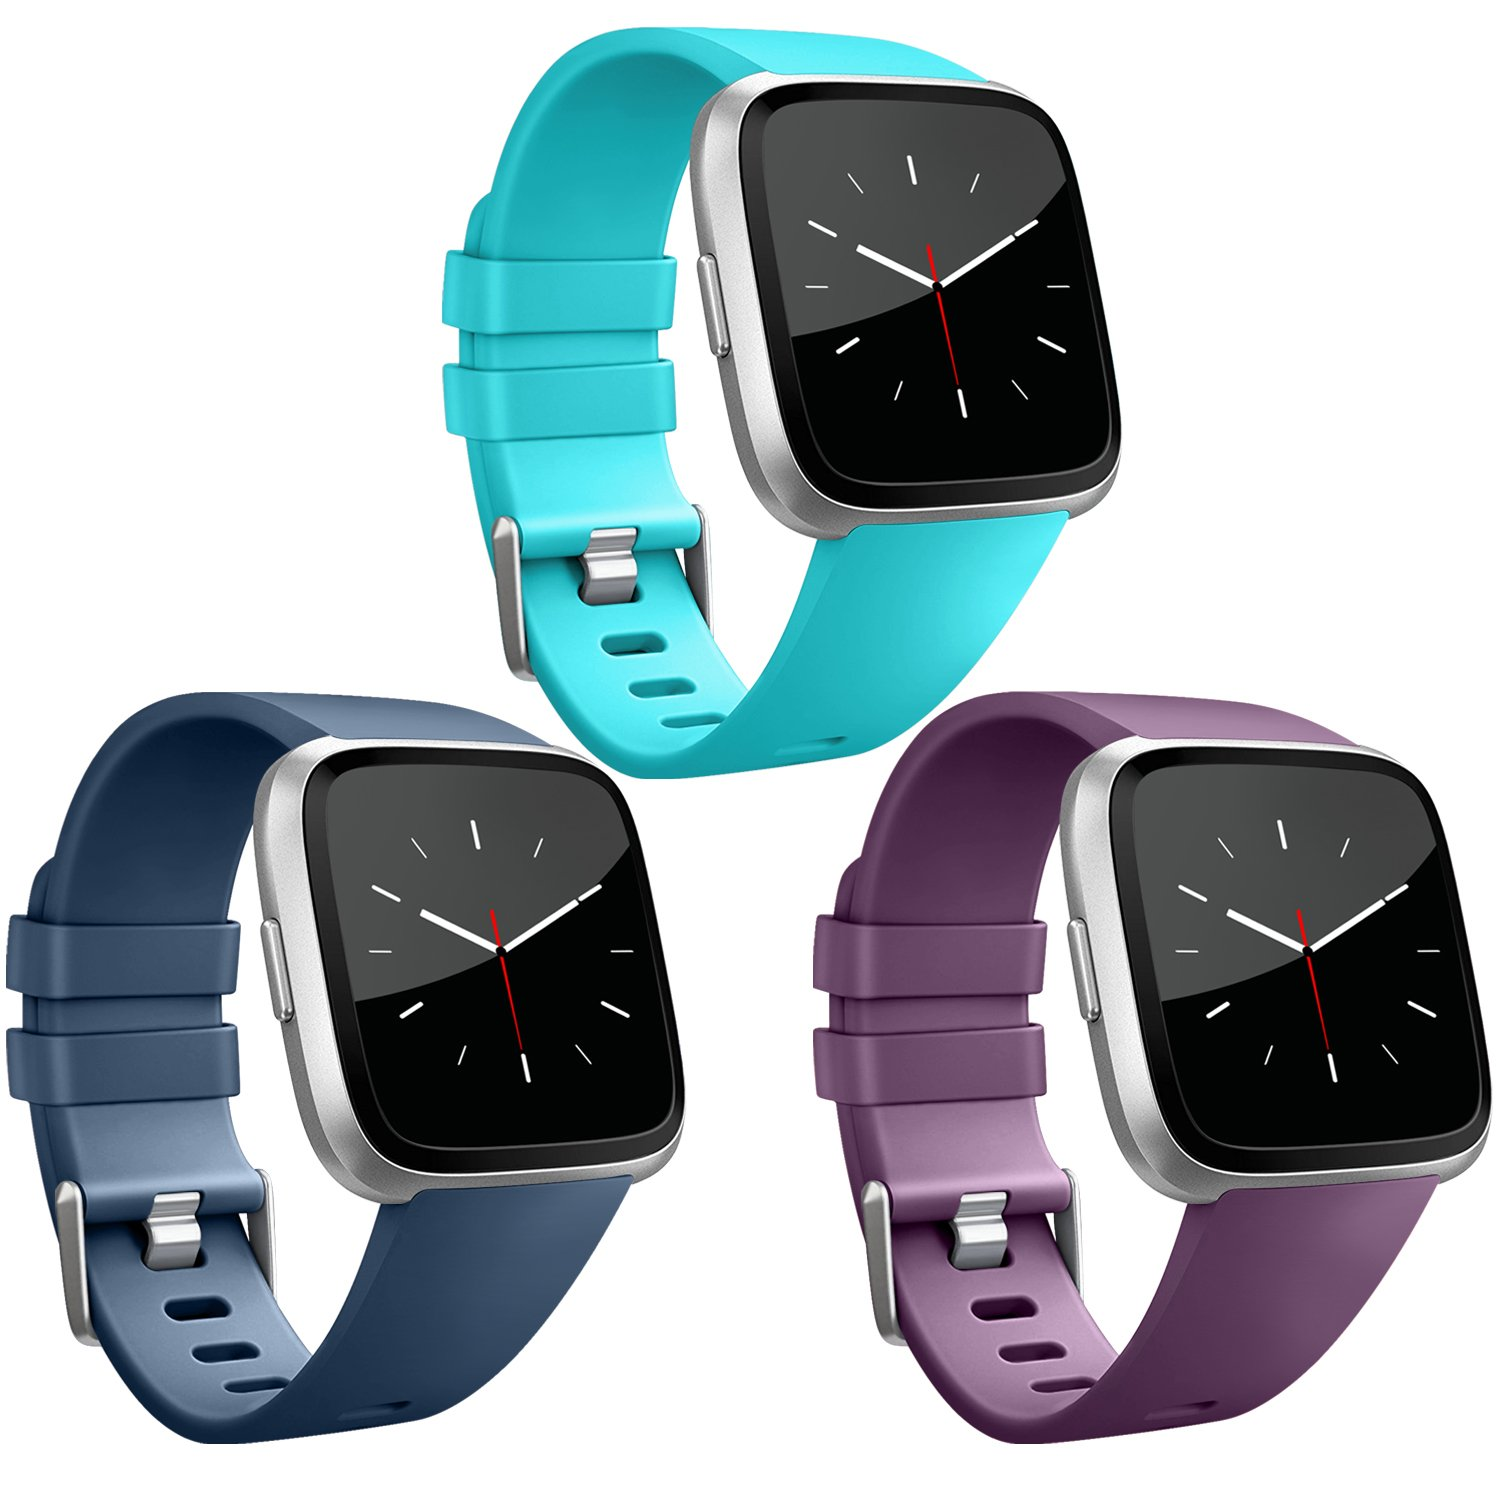 Vancle for Fitbit Versaバンド3パック、クラシックアクセサリー交換用Wristbands for Fitbit Versa Smartwatch B07DNYG72N 007, Teal, Navy Blue, Plum Small